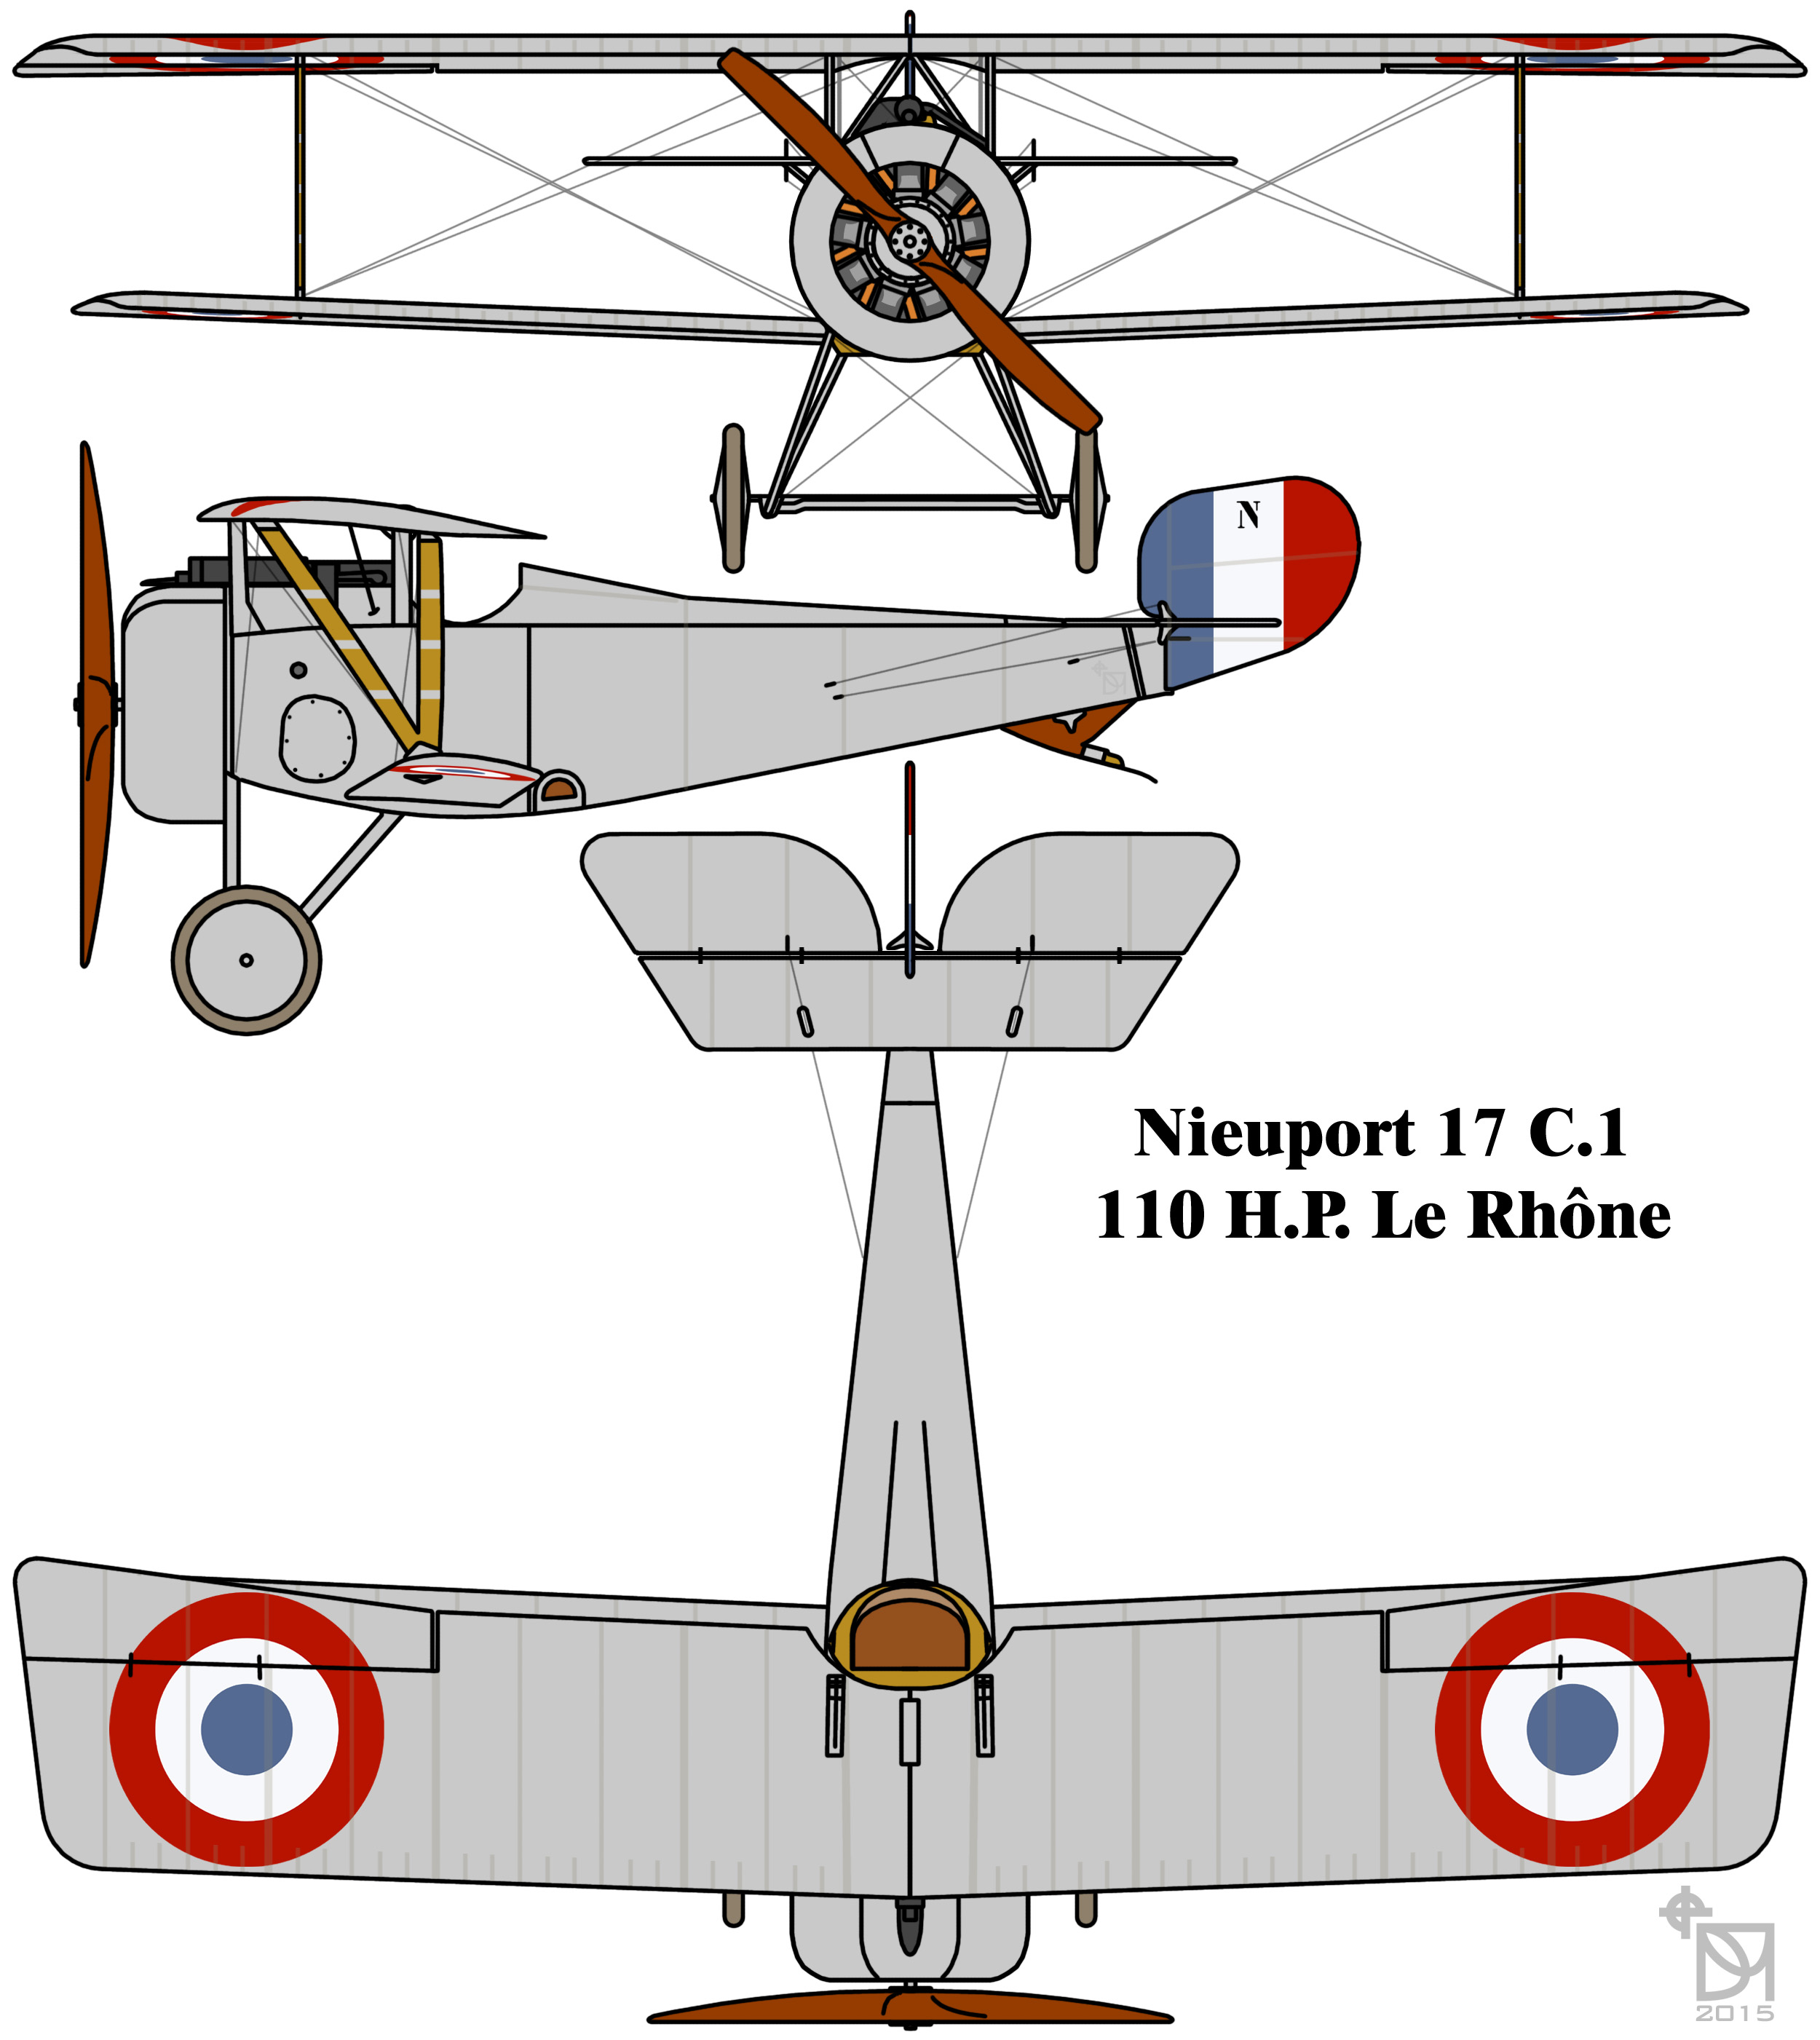 Nieuport_17_C.1_French_First_World_War_single_seat_fighter_colourized_drawing.jpg